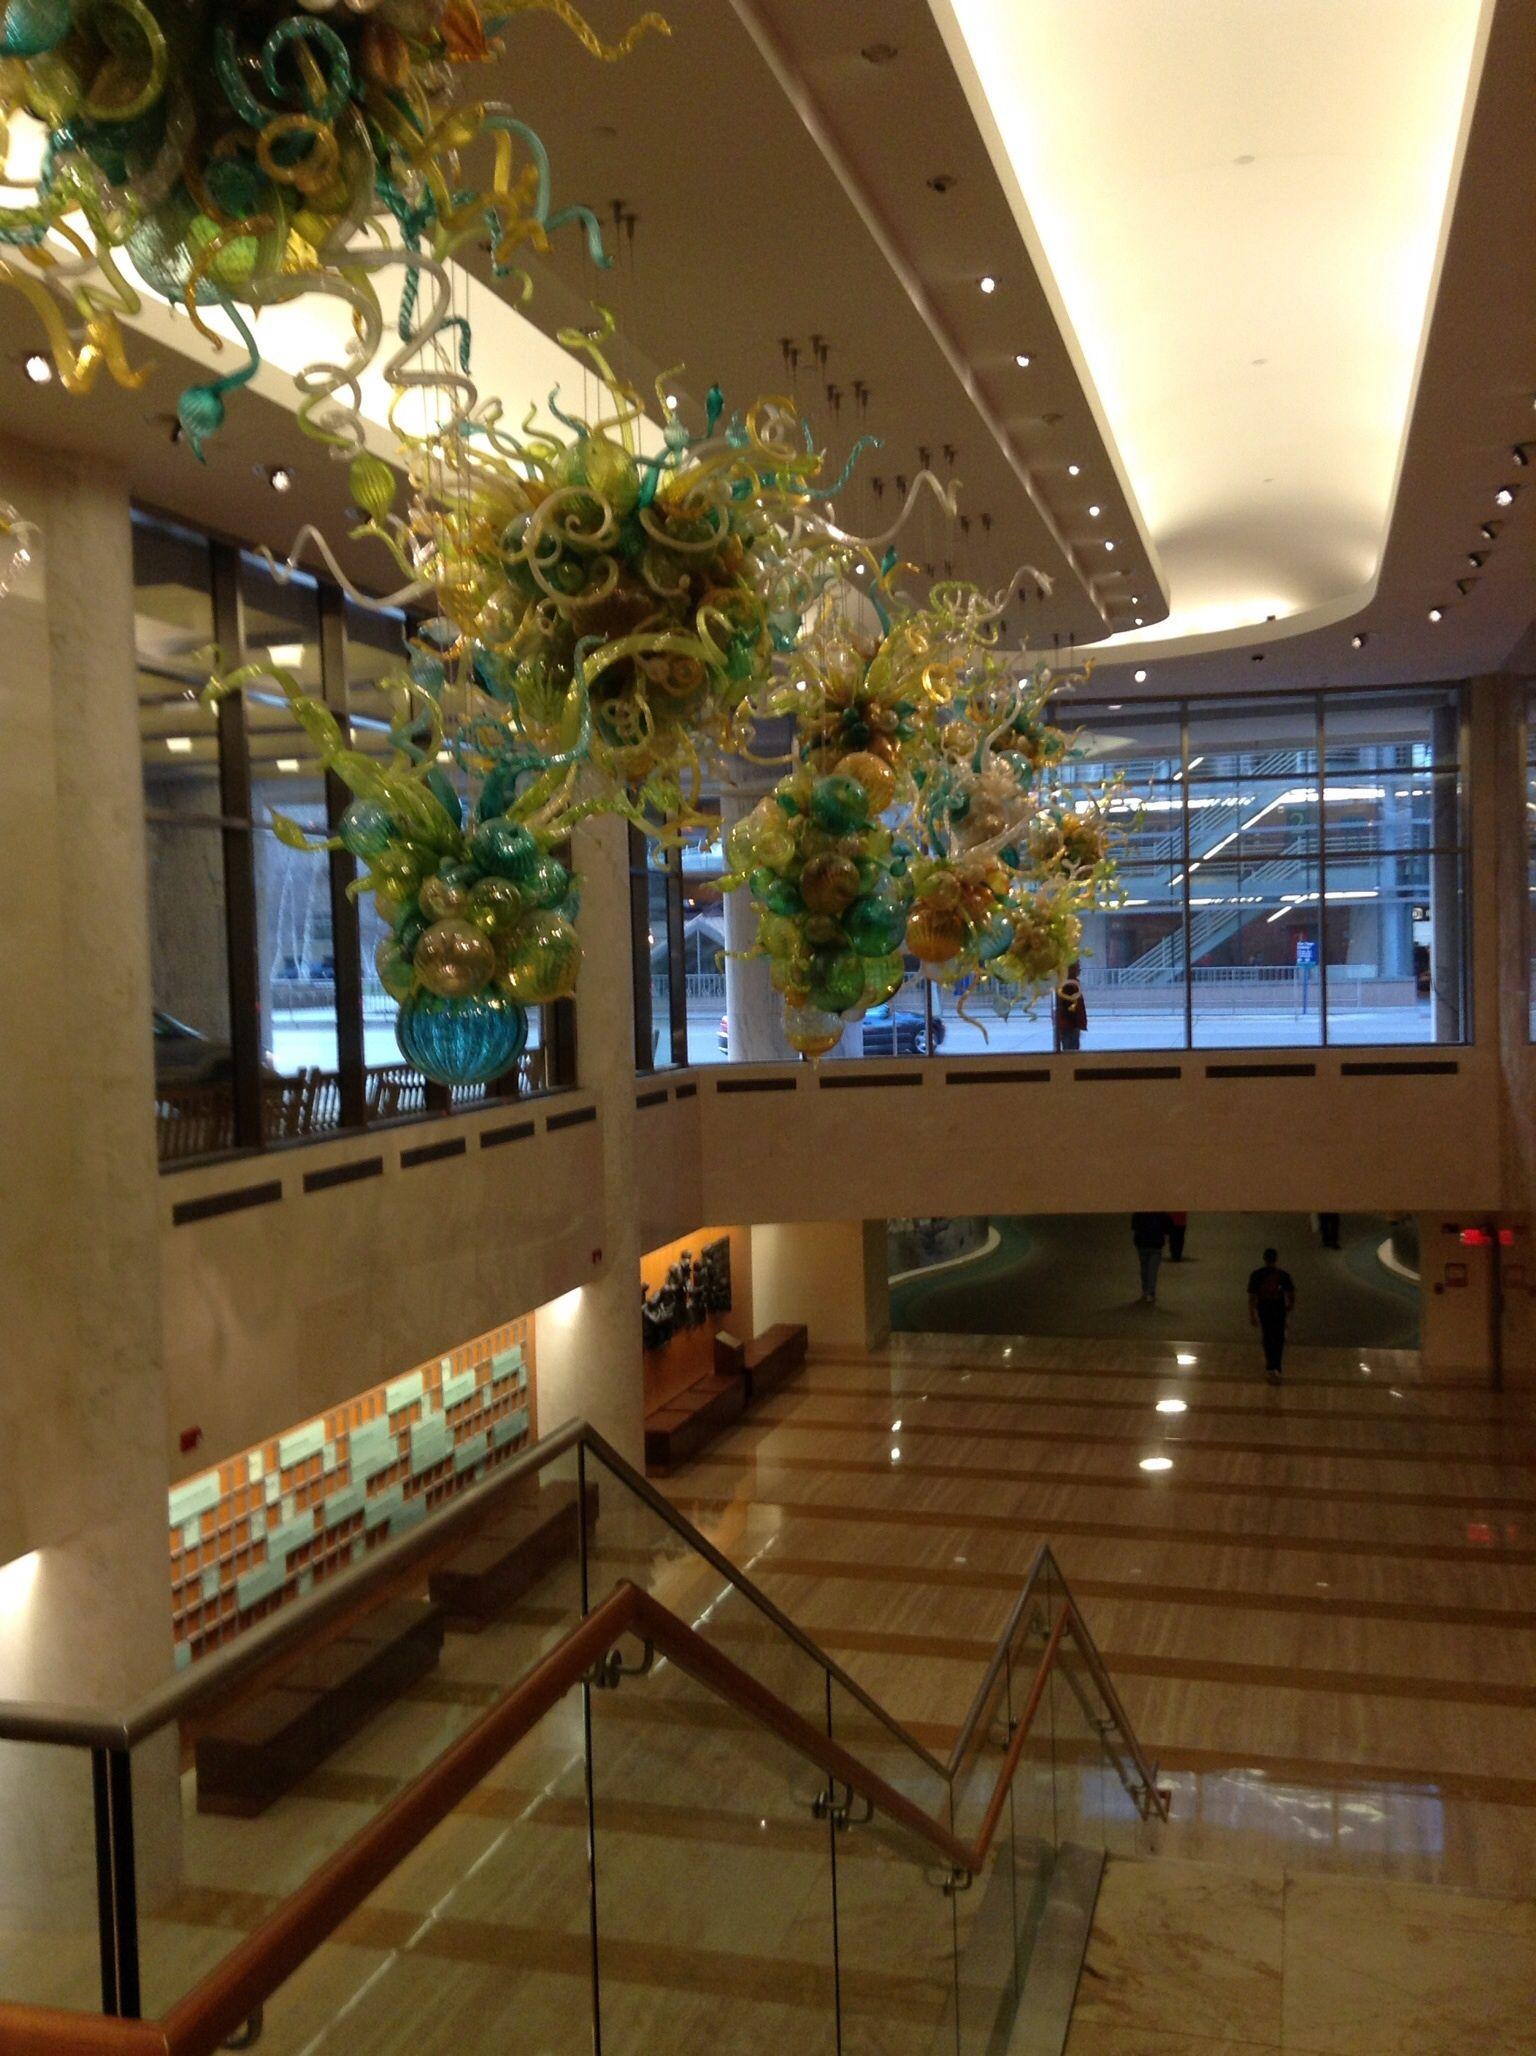 Chihuly sculpture at Mayo Clinic, Rochester. Consists of 13 pieces ...